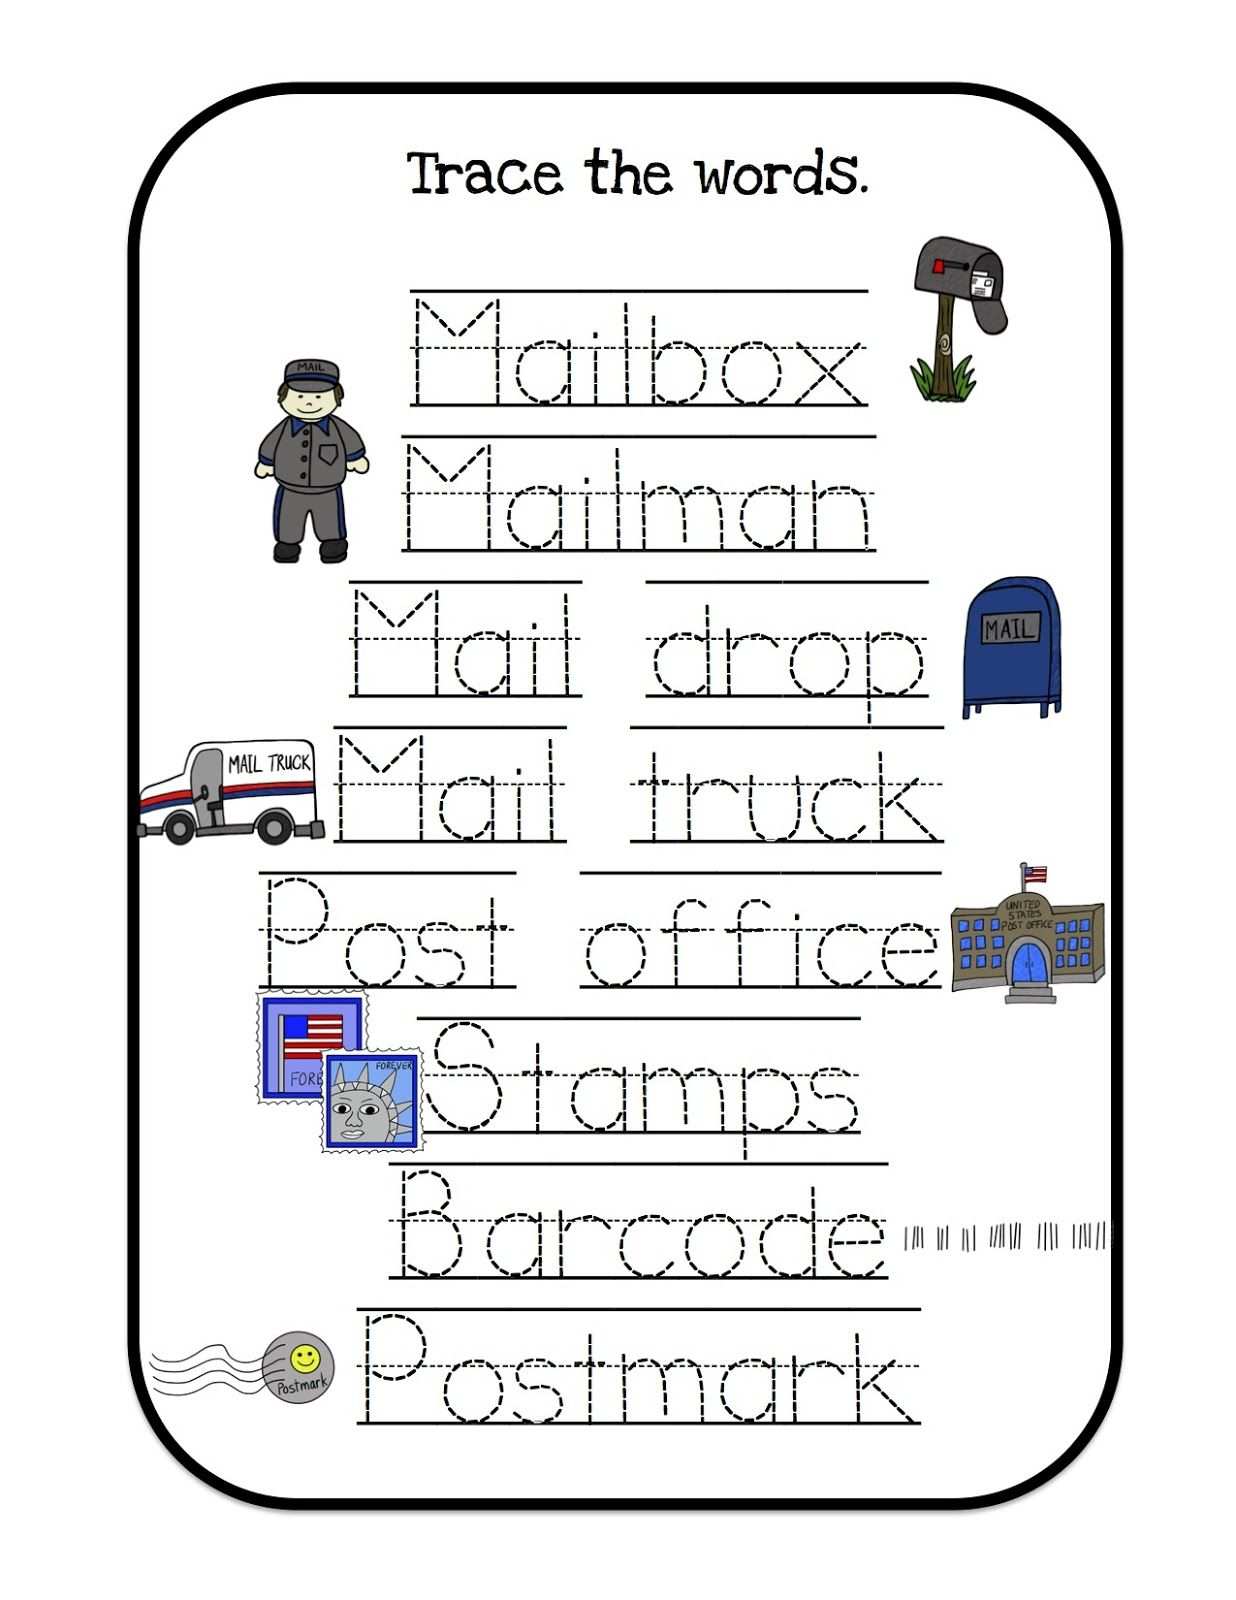 Mail Trace The Words 1 236 1 600 Pixels